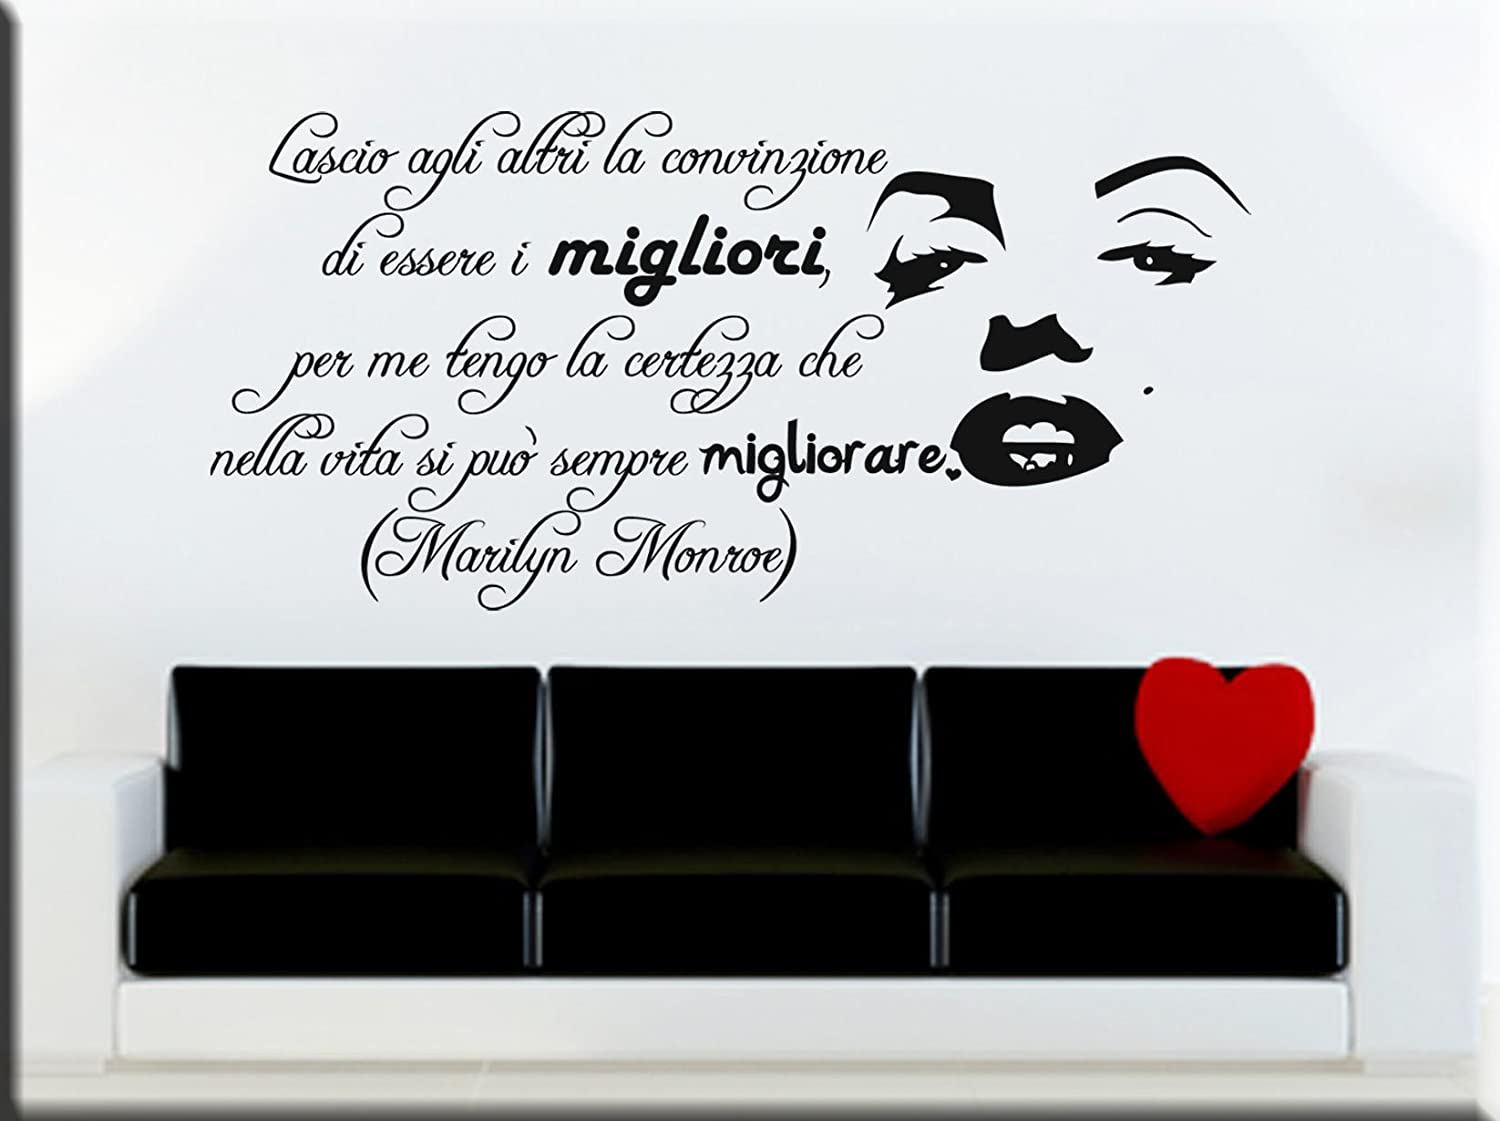 WALL STICKERS ADESIVI MURALI FRASI MARILYN MONROE: Amazon.it: Handmade